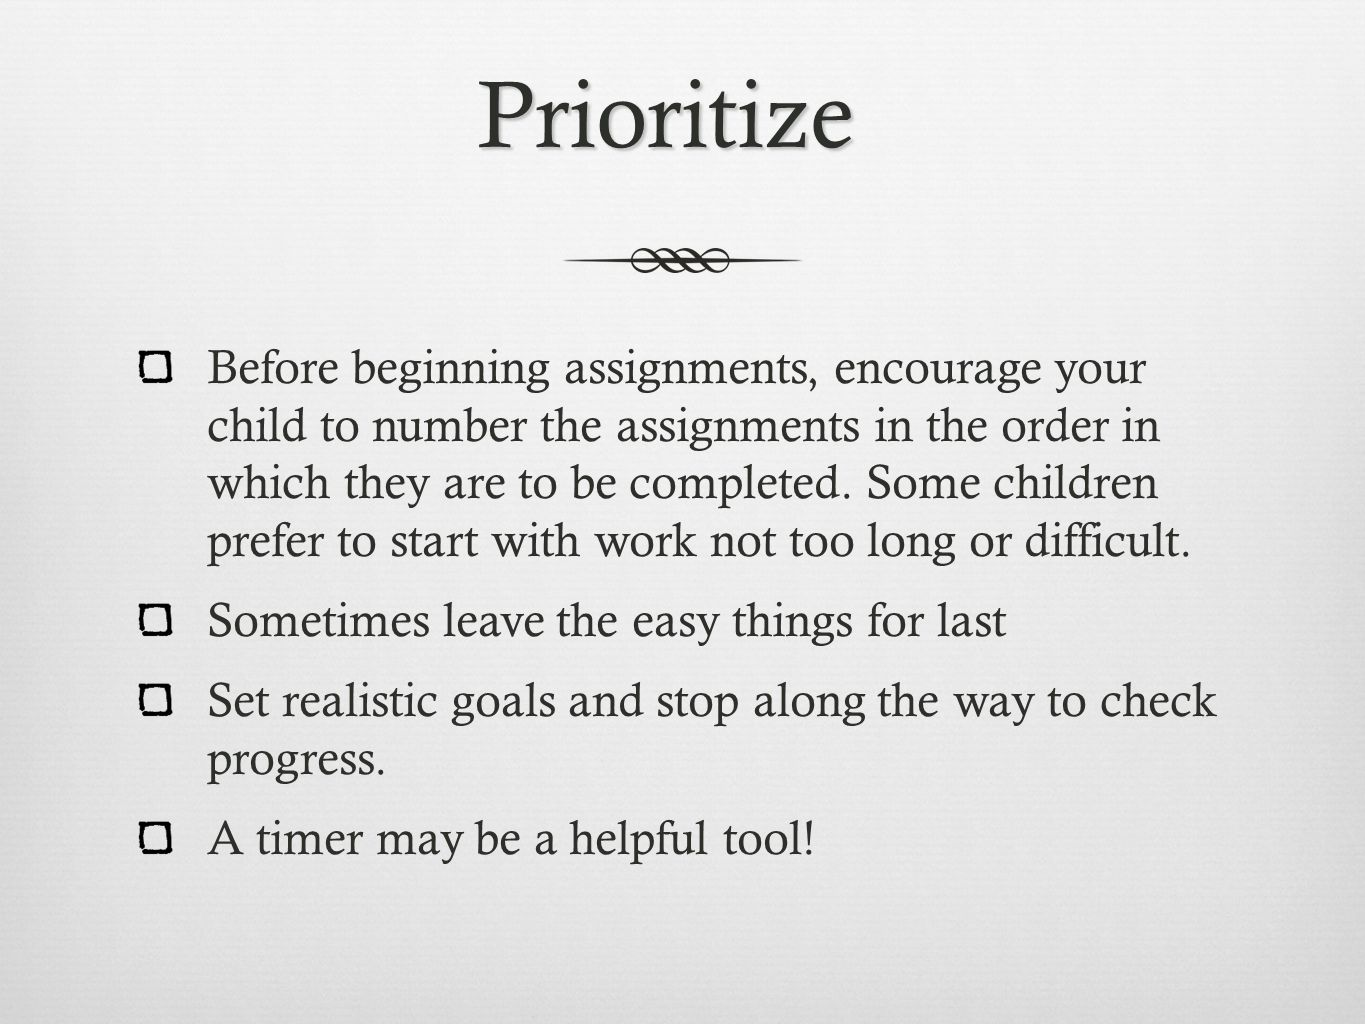 Prioritize Before beginning assignments, encourage your child to number the assignments in the order in which they are to be completed.